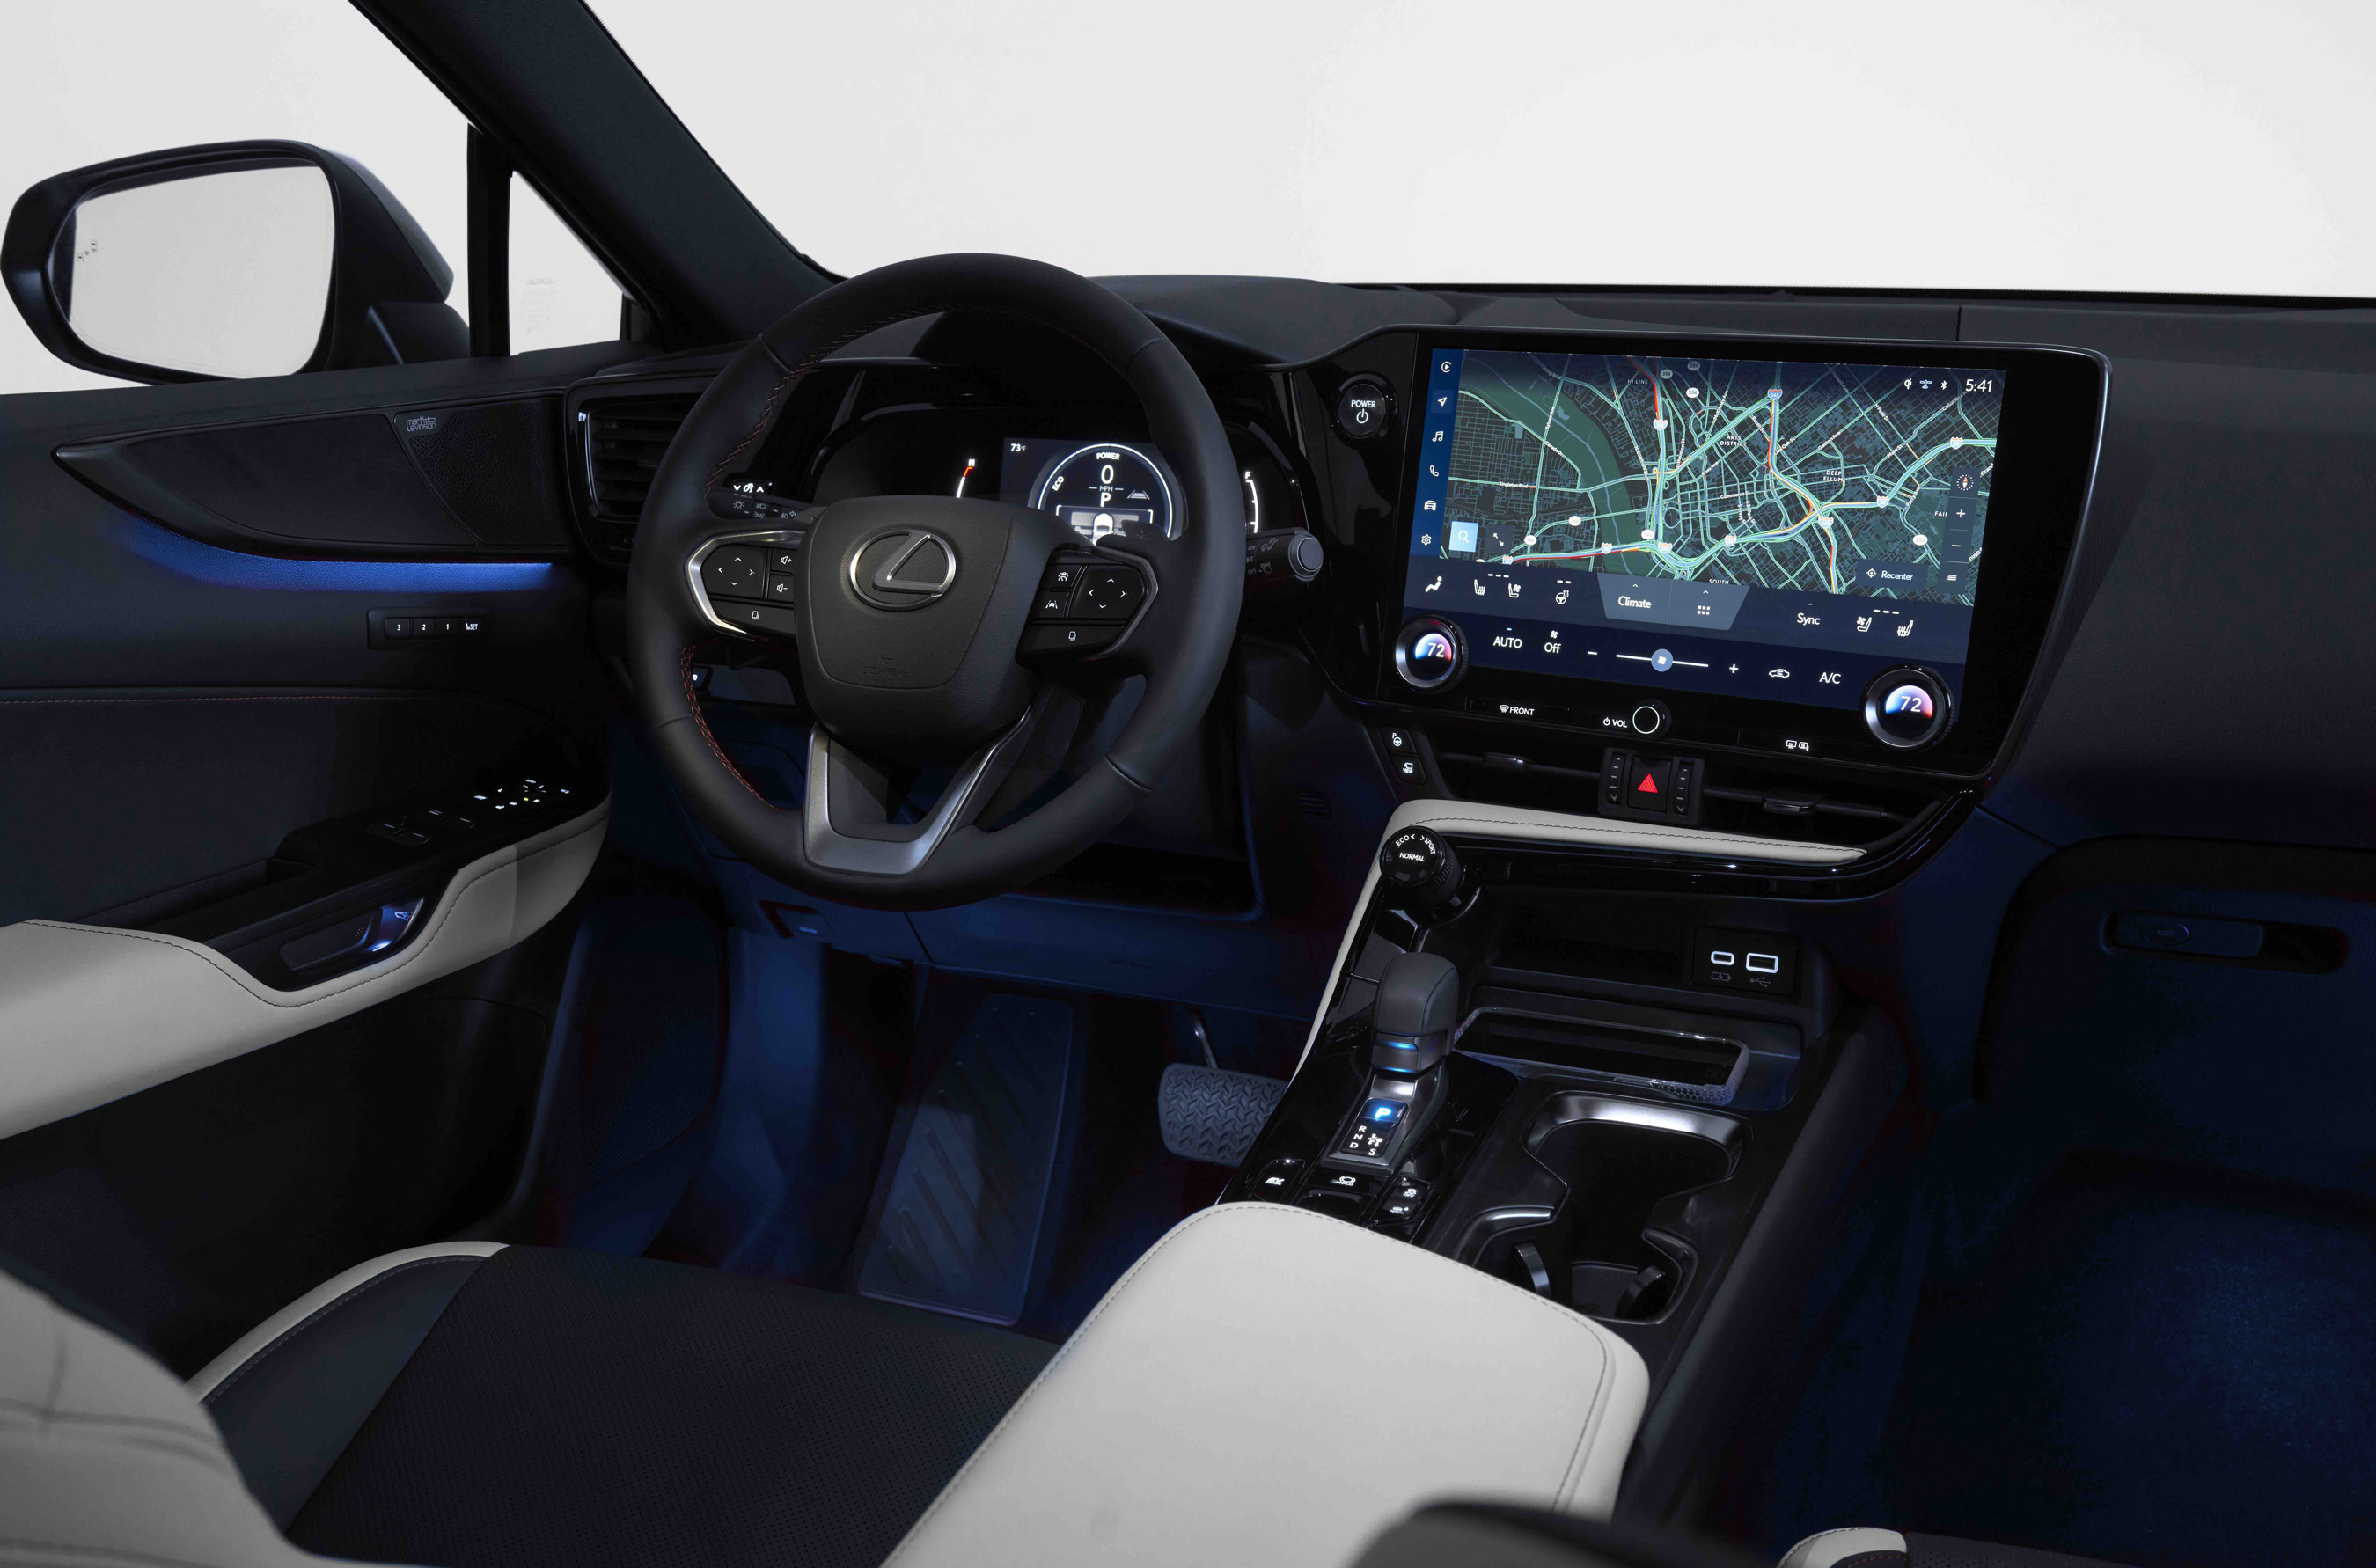 Lexus introduces the all-new 2022 NX, delivering a long list of firsts, including the all-new Lexus Interface multimedia system designed with the North American market in mind.